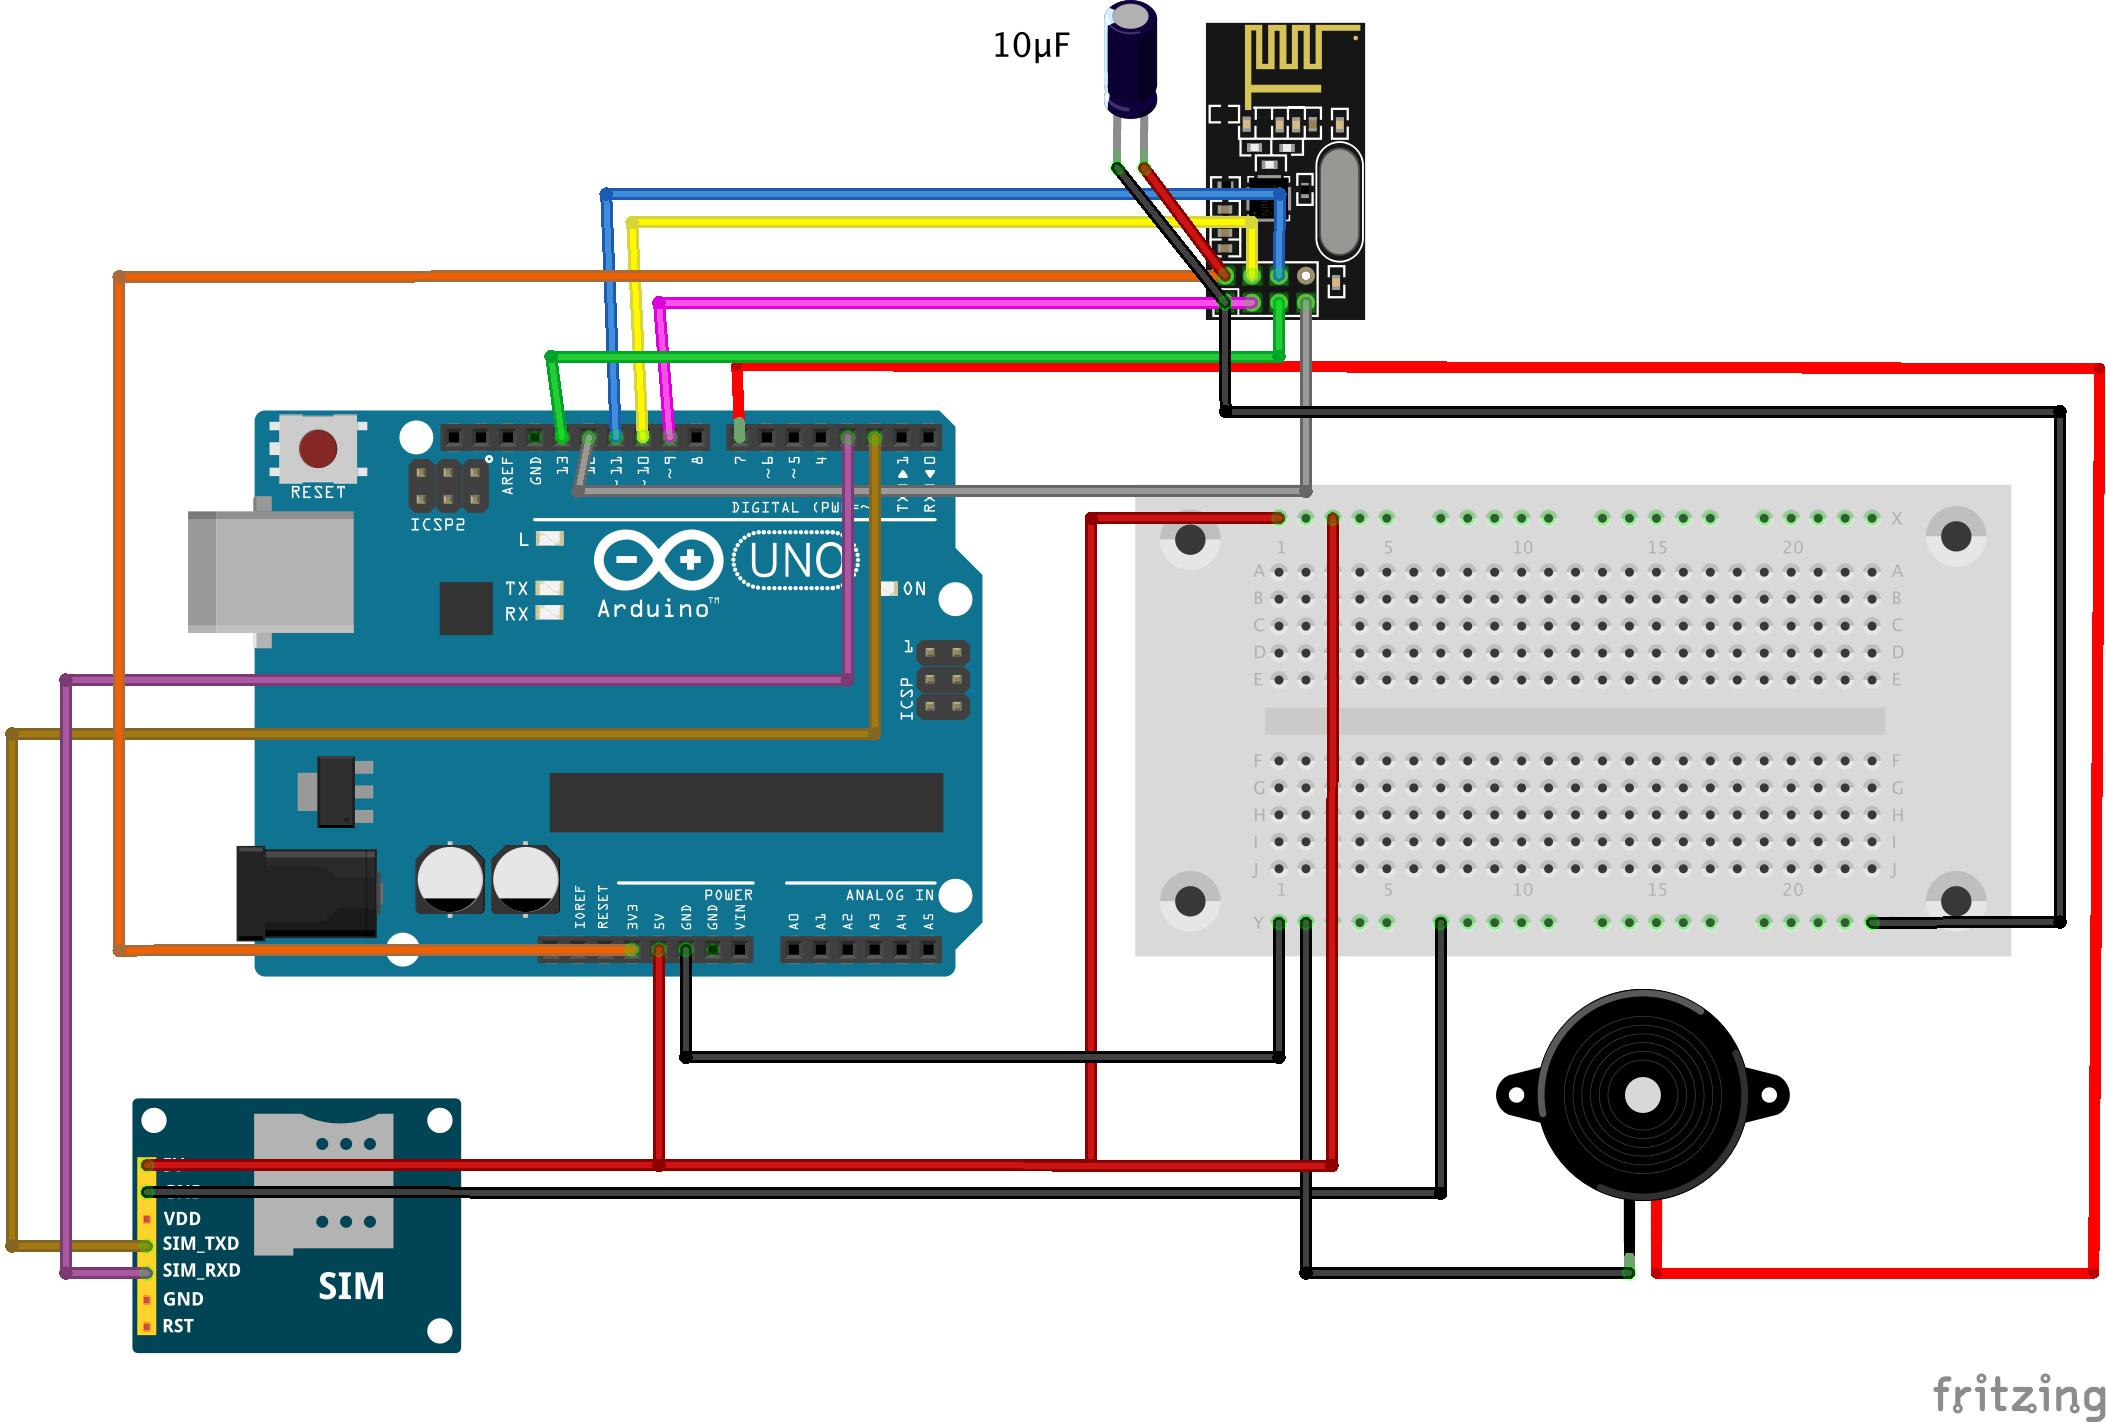 As you can make out from the above sketch, I have connected the Tx and Rx  of the SIM900A module with digital pins 2 and 3 of the Arduino respectively.